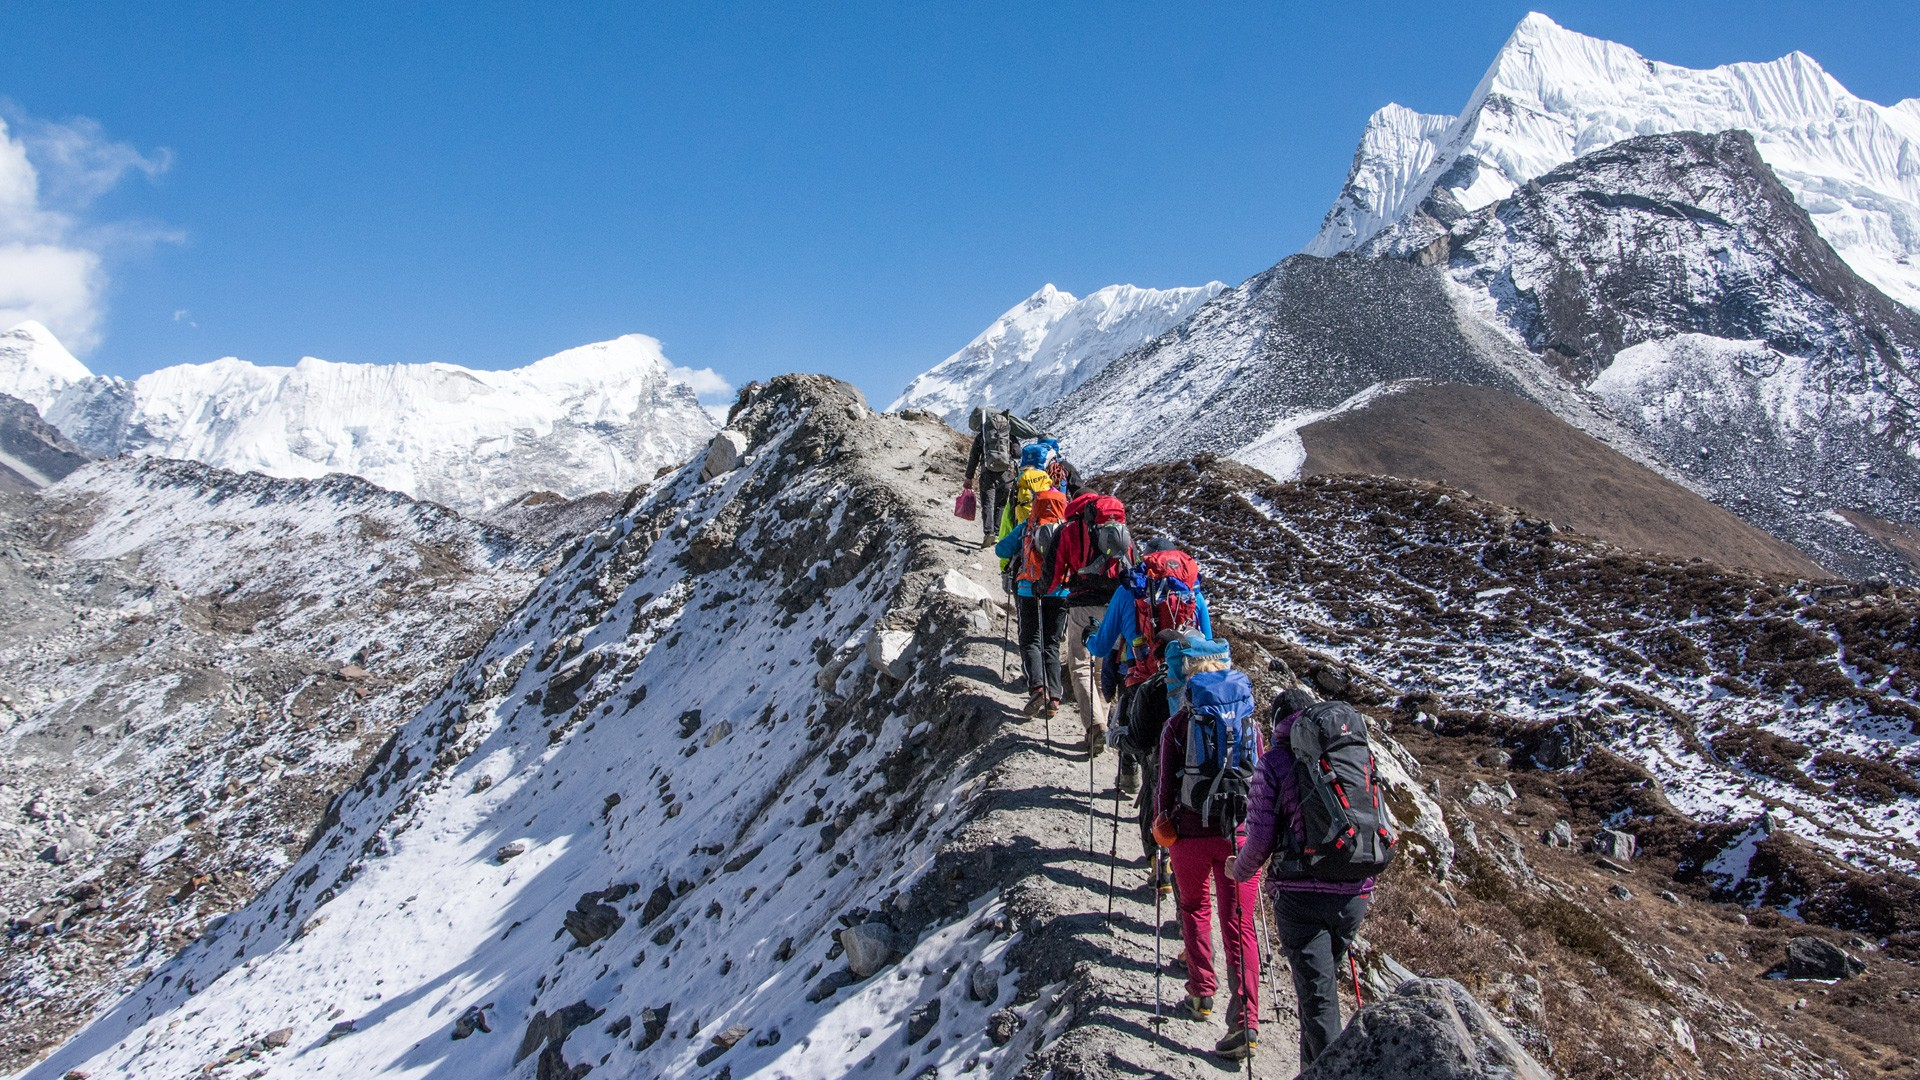 """""""Now, foreigners willing to come to Nepal for mountaineering and trekking, can get tourist visas from our embassies abroad,"""" Kamal Prasad Bhattarai, spokesperson at the tourism ministry told Xinhua on Tuesday."""